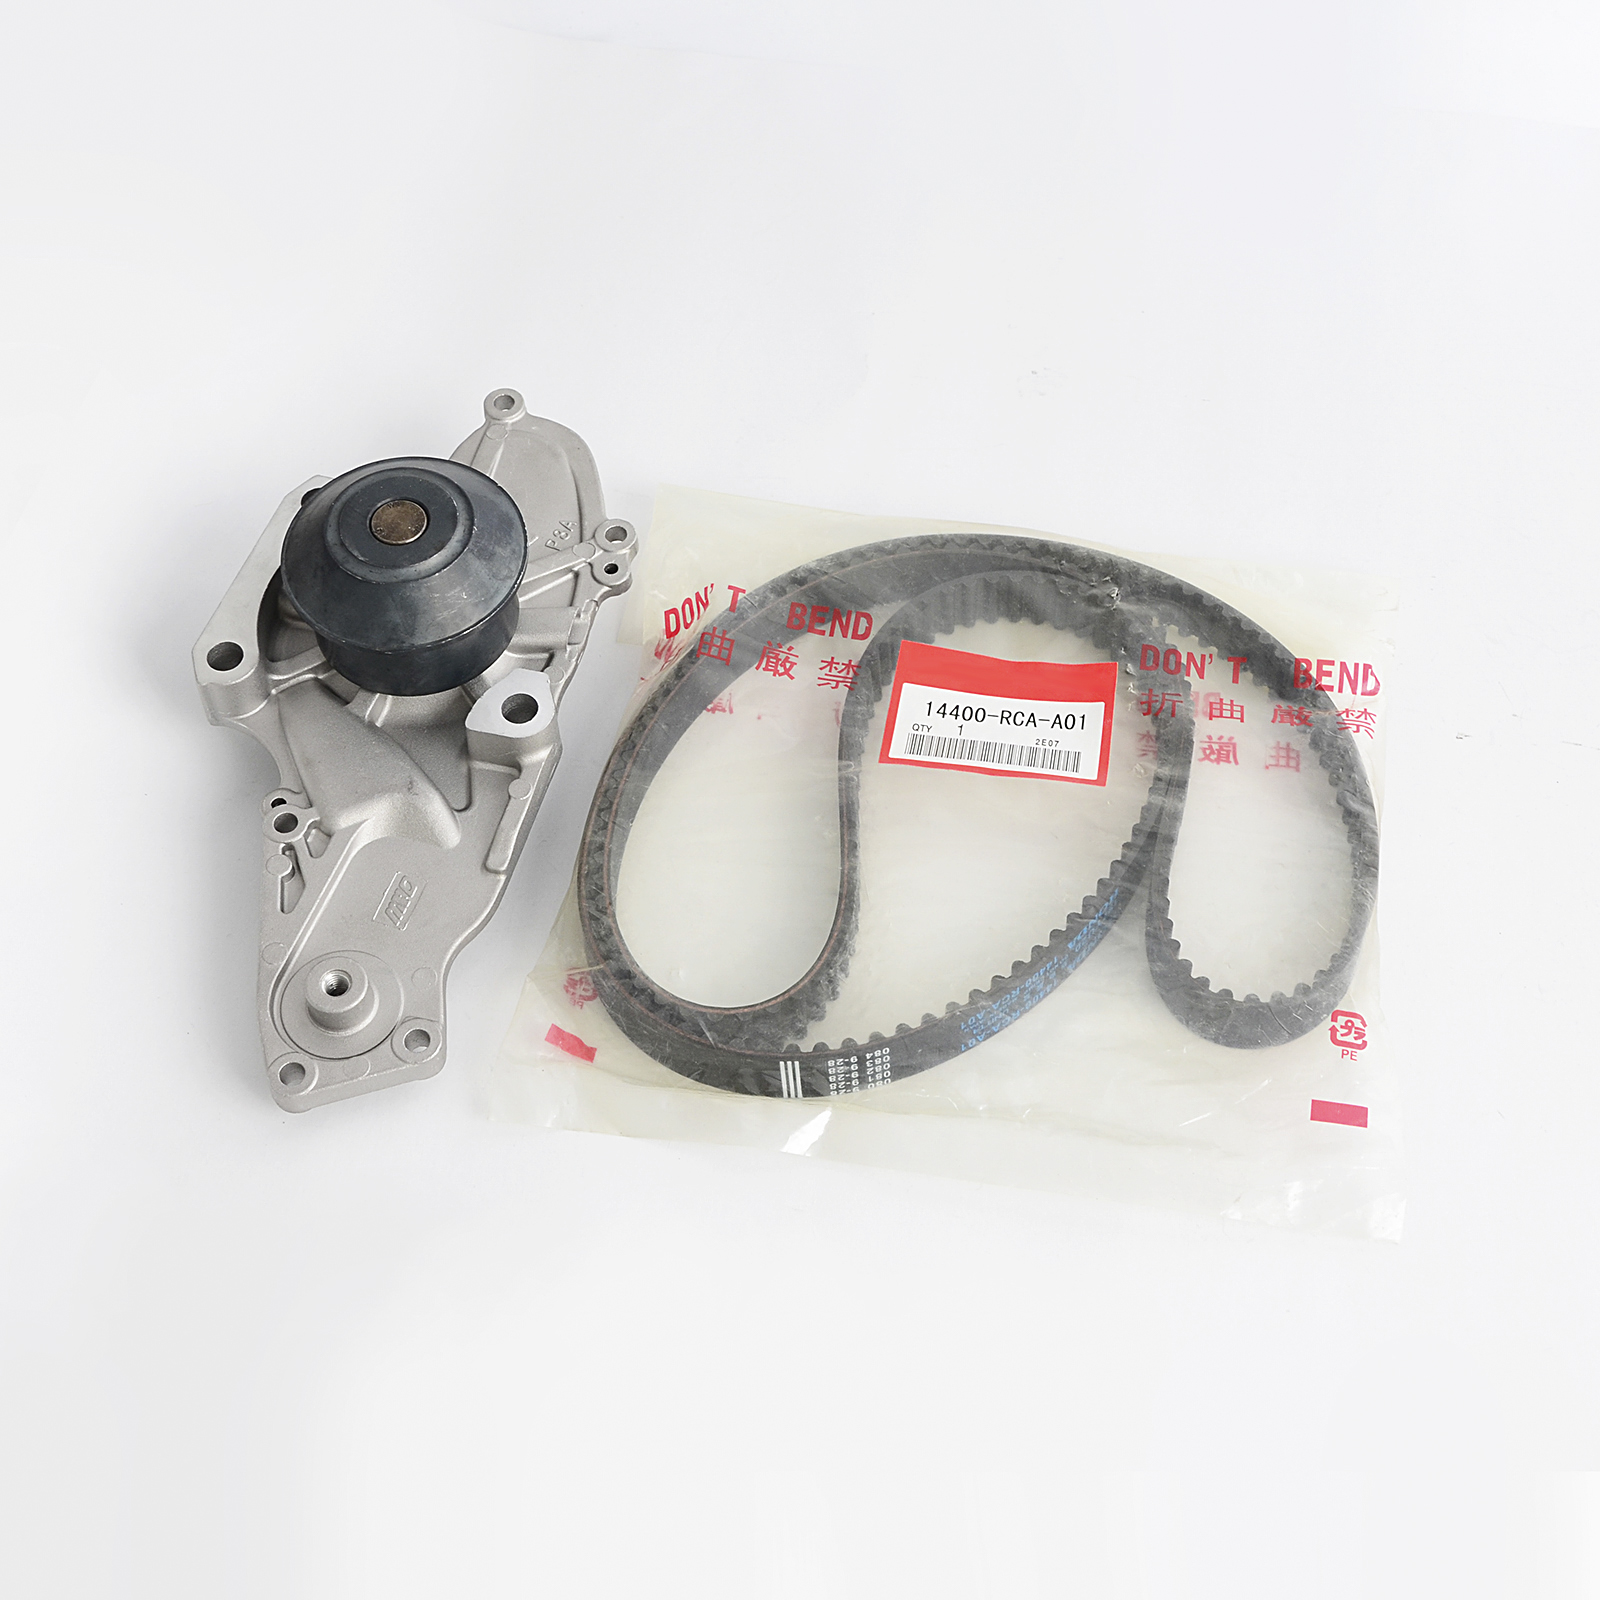 Buy Genuine Oem Timing Belt Water Pump Kit For 2002 Acura Tl Honda V6 Factory Parts From Reliable F Suppliers On Dirt Bike